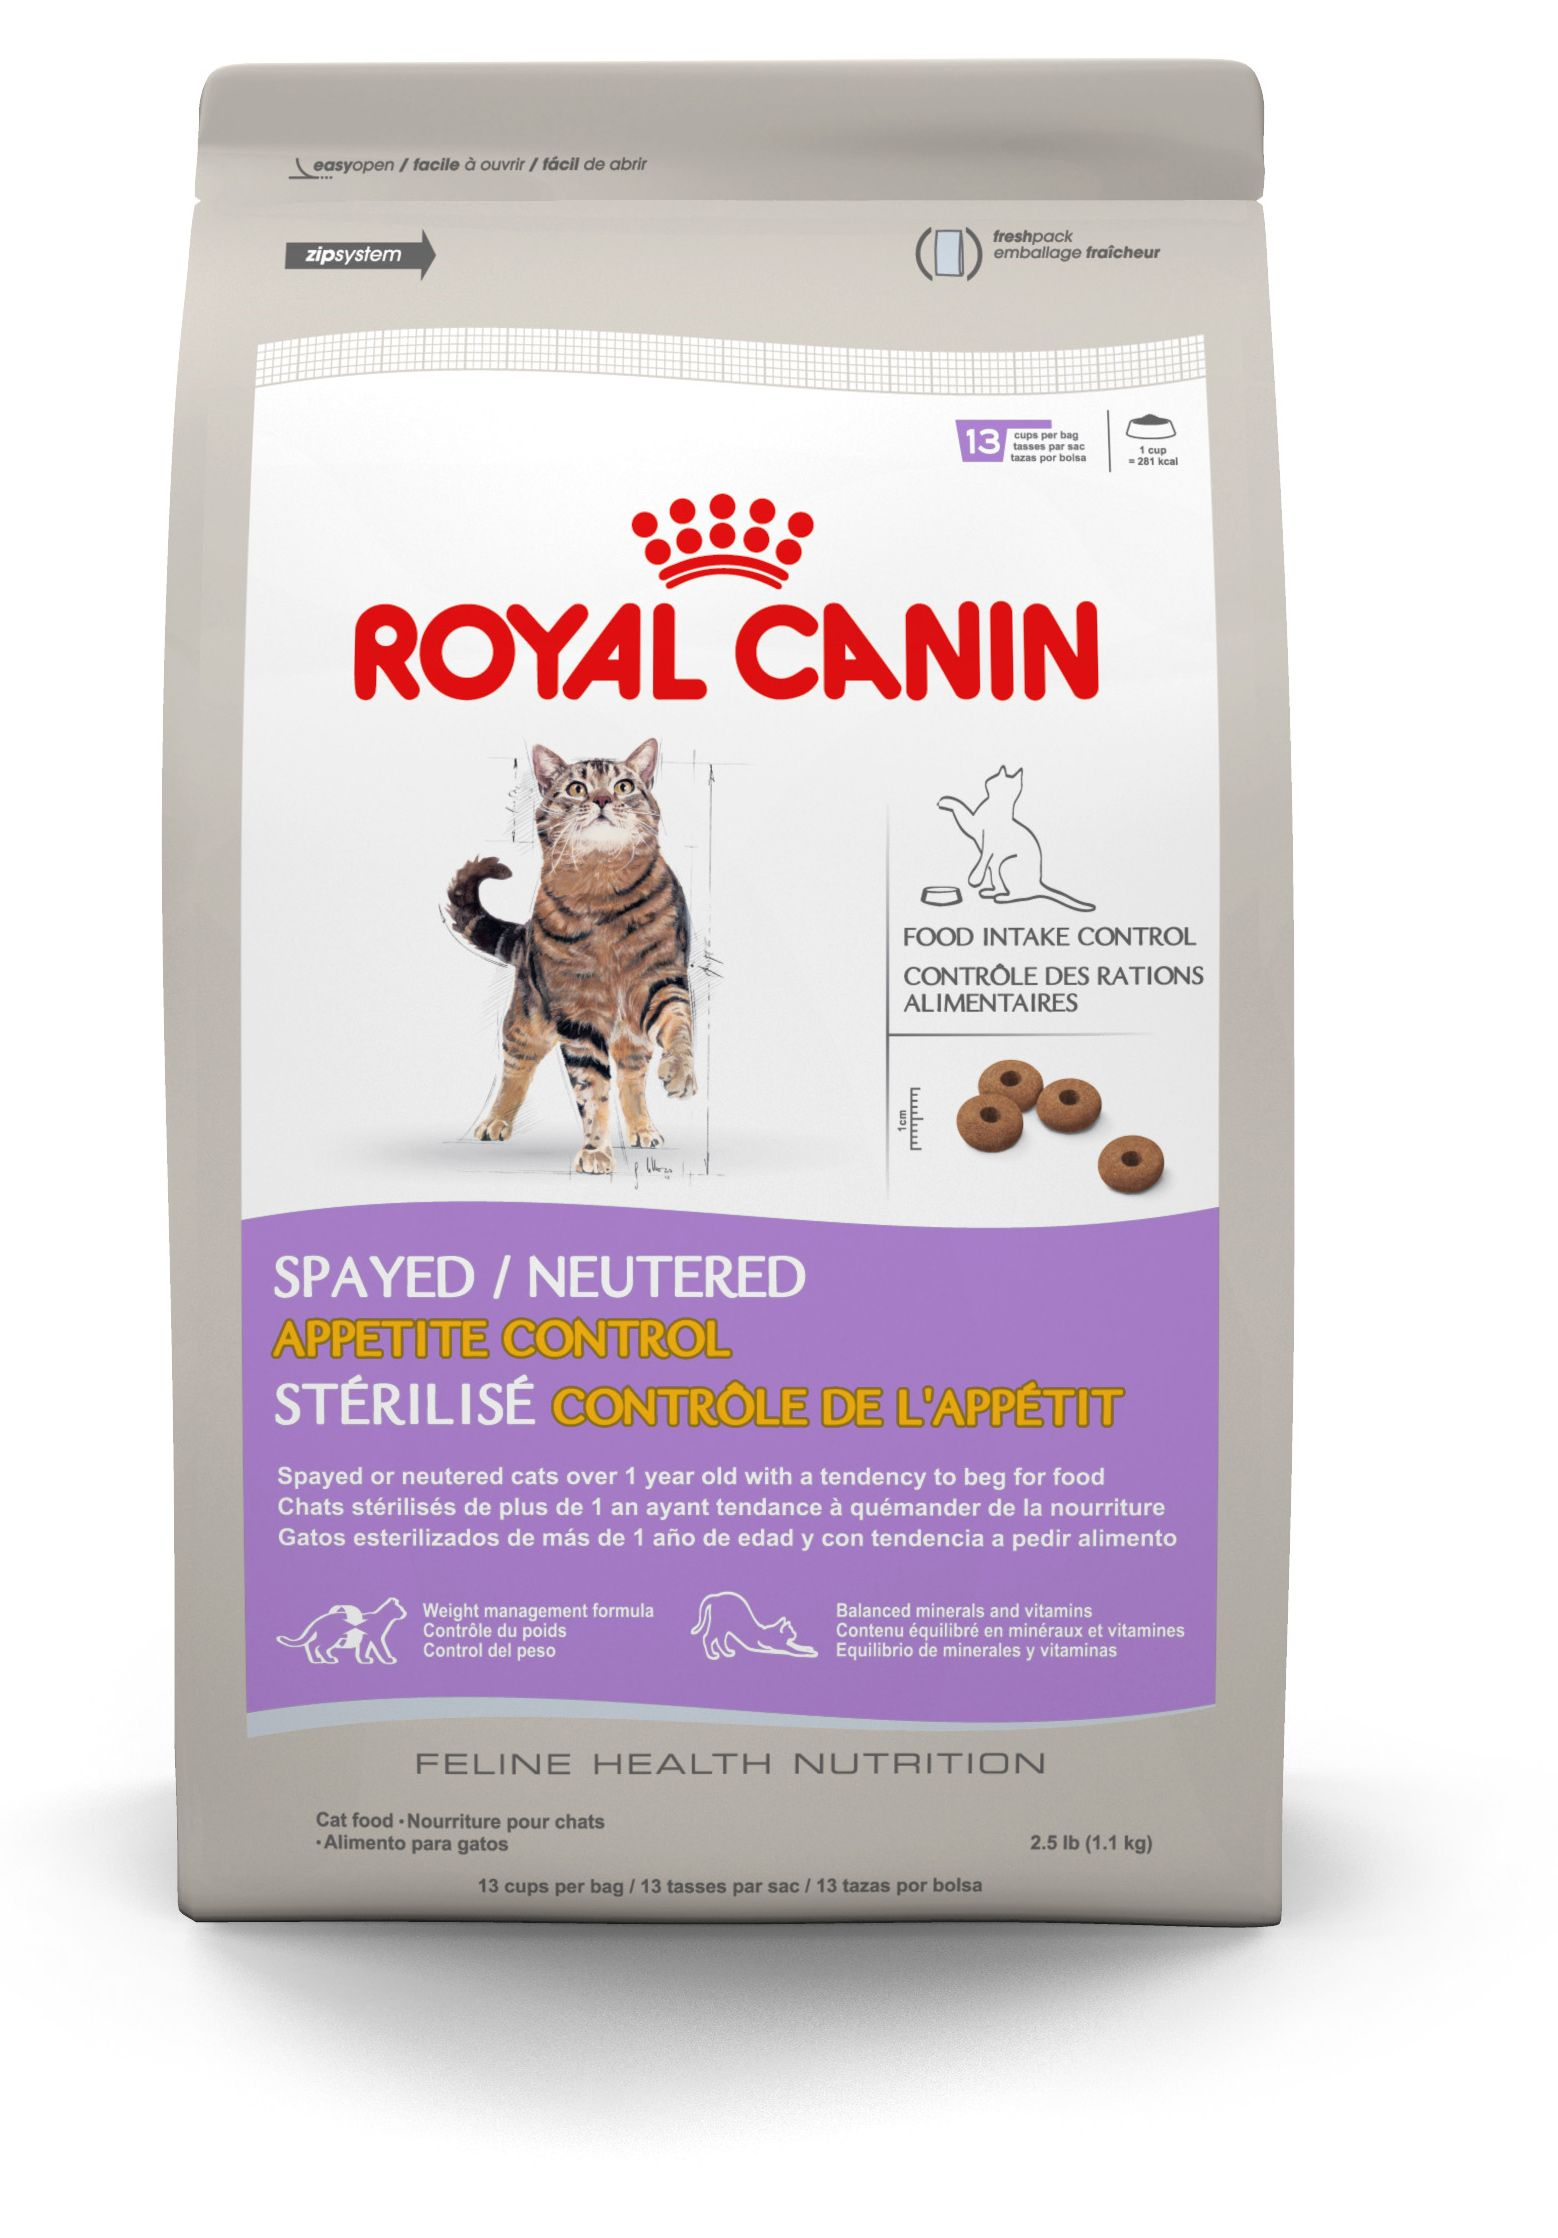 Royal Canin Cat Food Recall Check Out The Image By Visiting The Link Kittens Kitten Food Cat Care Tips Cat Food